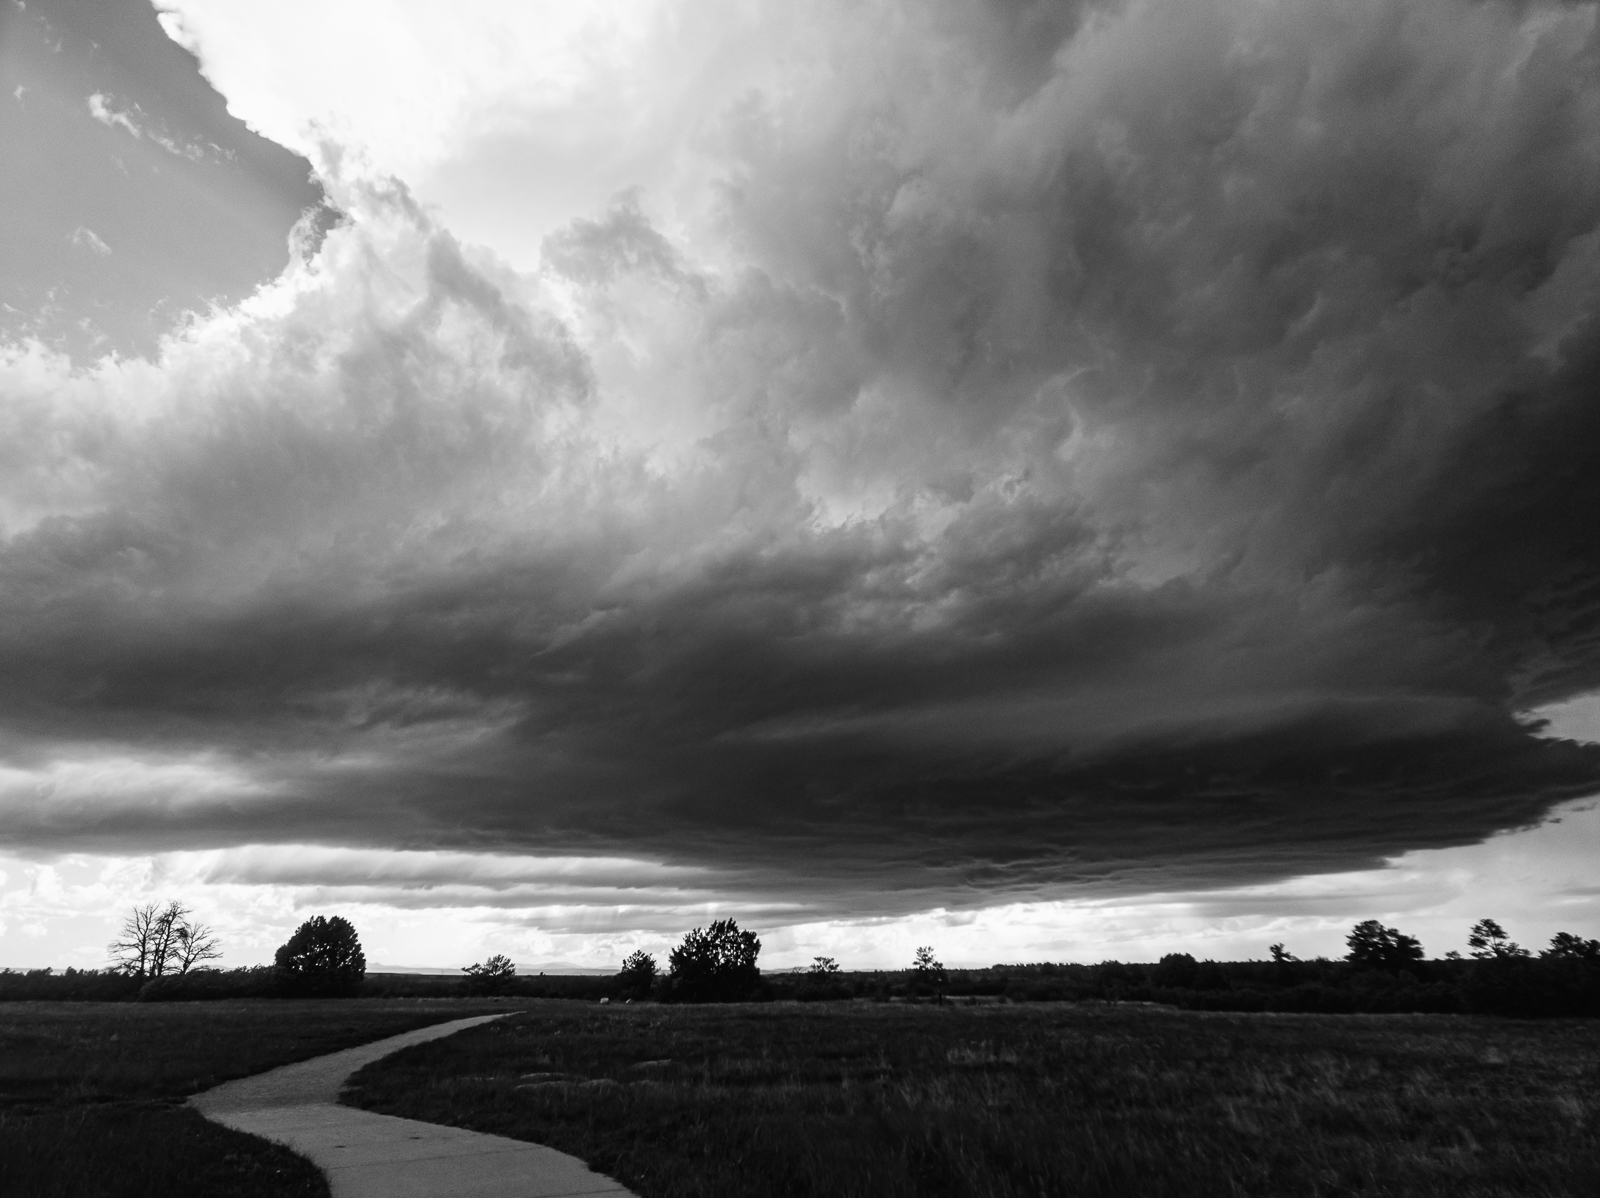 Day 162- 365 Day B&W Photo Challenge - Shelf Cloud covers eastern Denver as it moves on to the Eastern Plains of Colorado. - Google Pixel 3, Moment Wide Lens, VSCO Fujifilm Neopan 400 Simulation